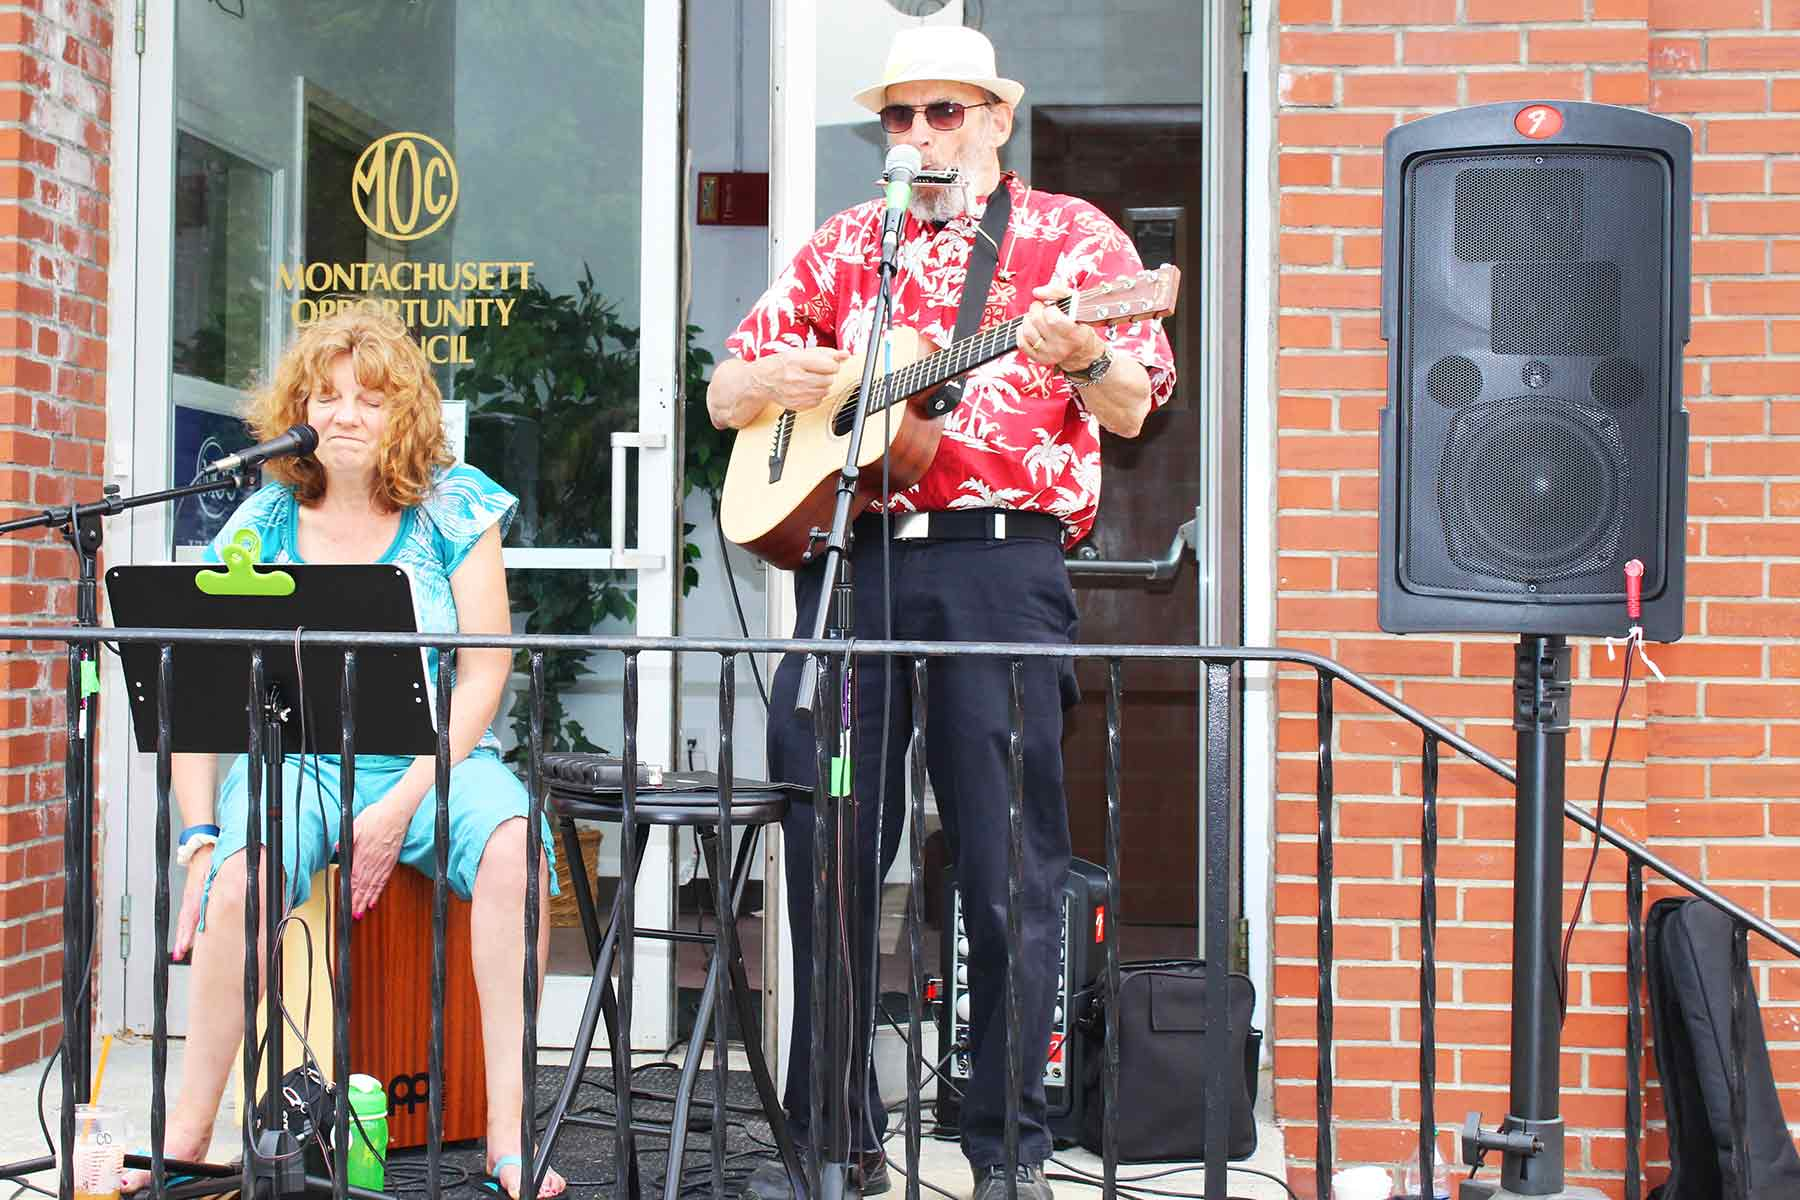 FITCHBURG -- This Saturday, after the annual North of Main cleanup, the neighborhood will host the first Fitchburg Porchfest, a series of outdoor performances by local bands available to anyone and everyone...   Read more here!